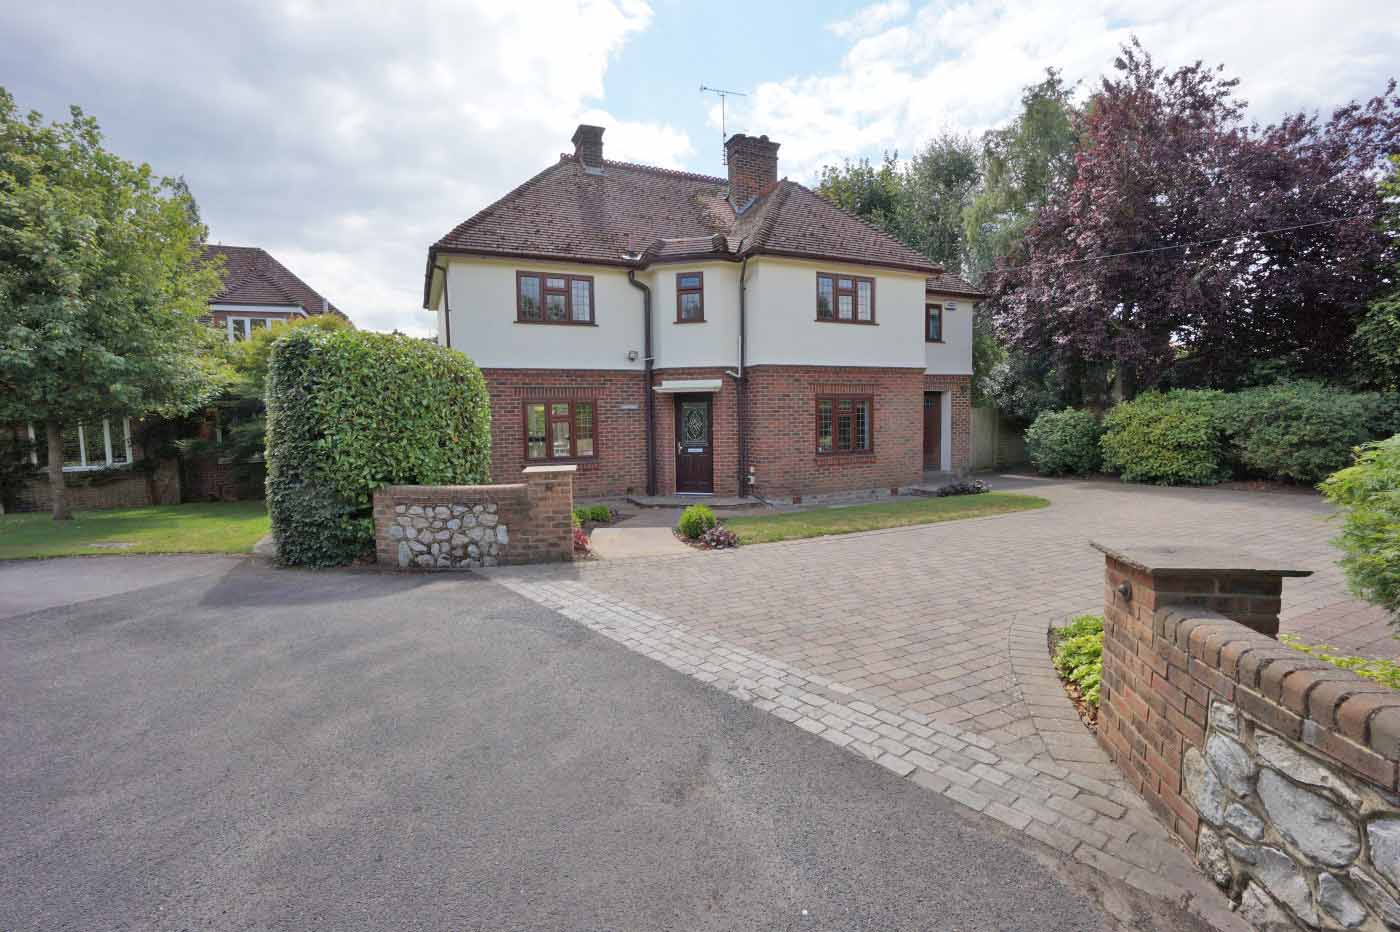 Long Mill Lane, Platt, Sevenoaks, Kent, TN15